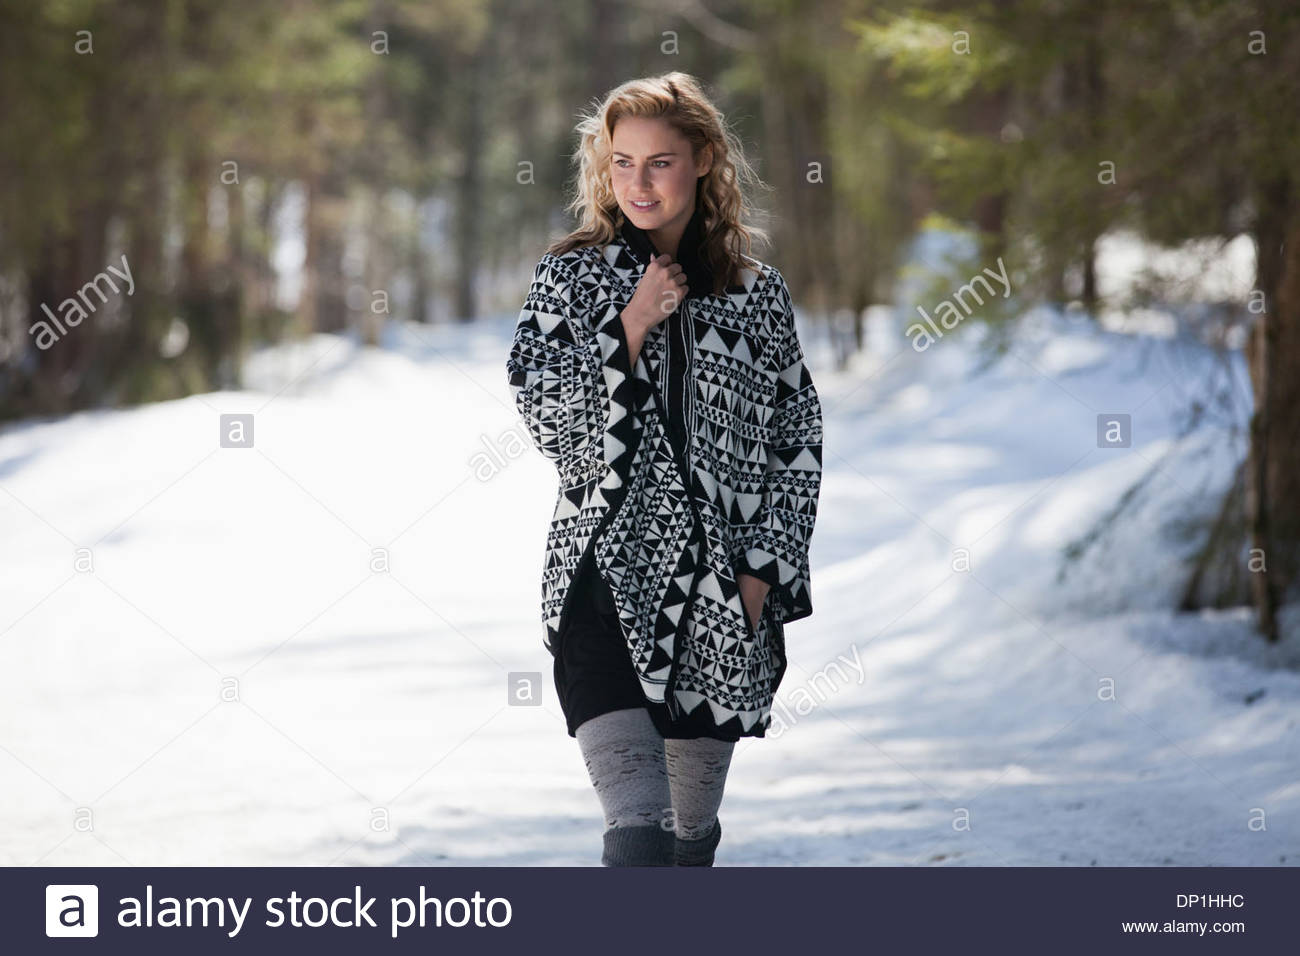 Woman walking in snow - Stock Image